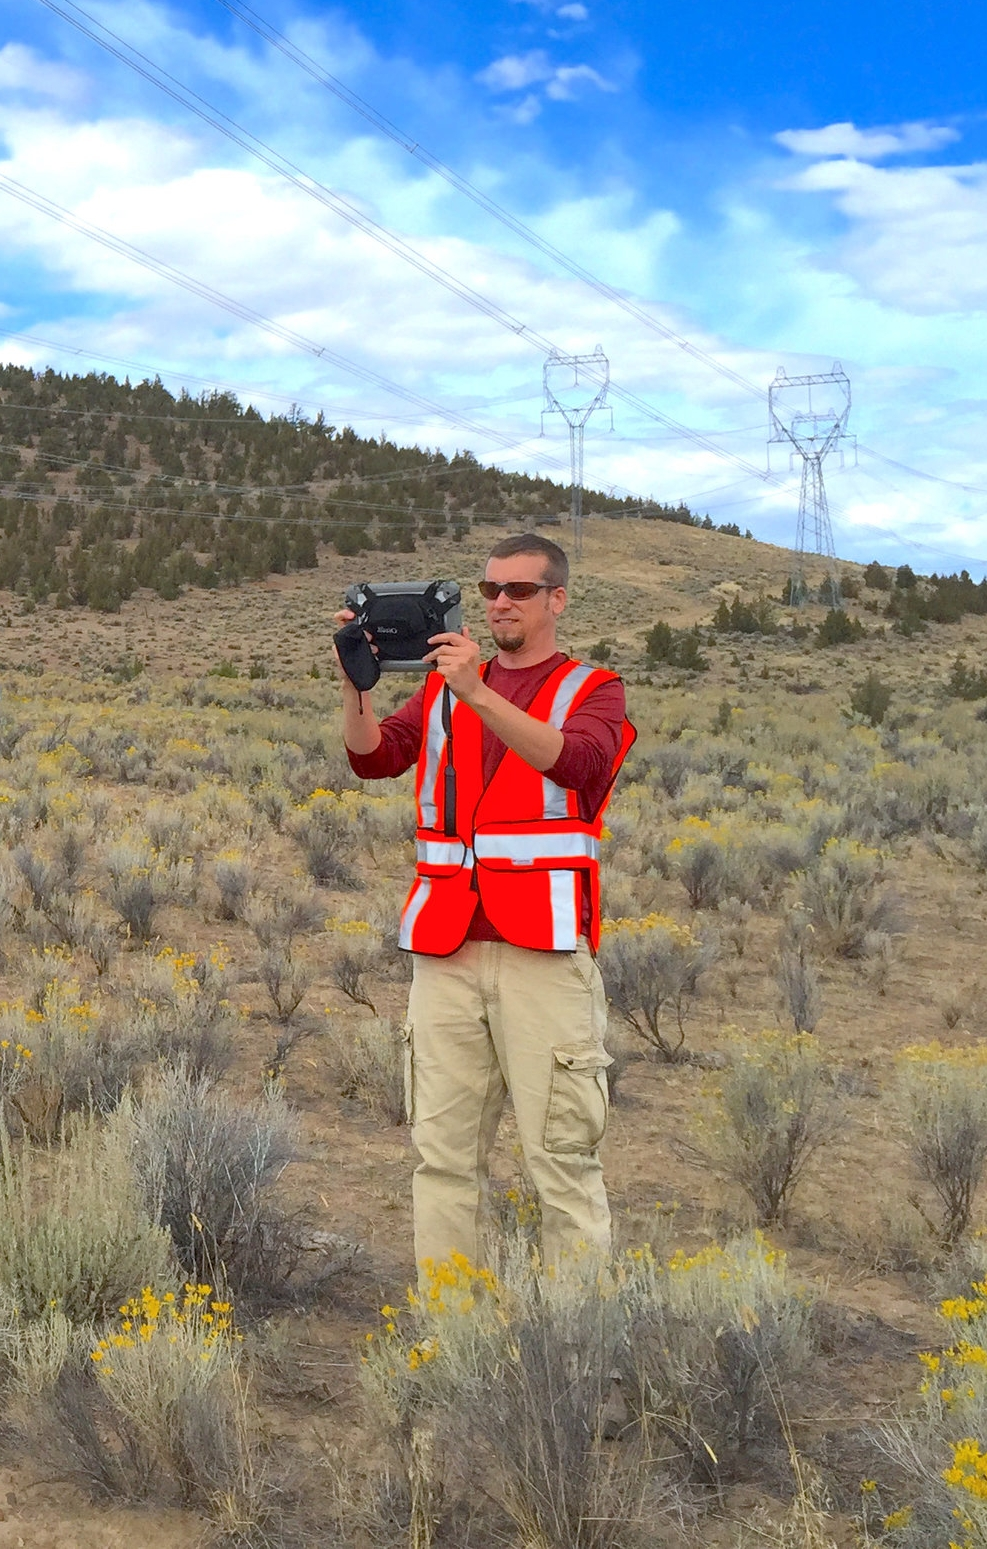 Matt with Mobile GIS in the field